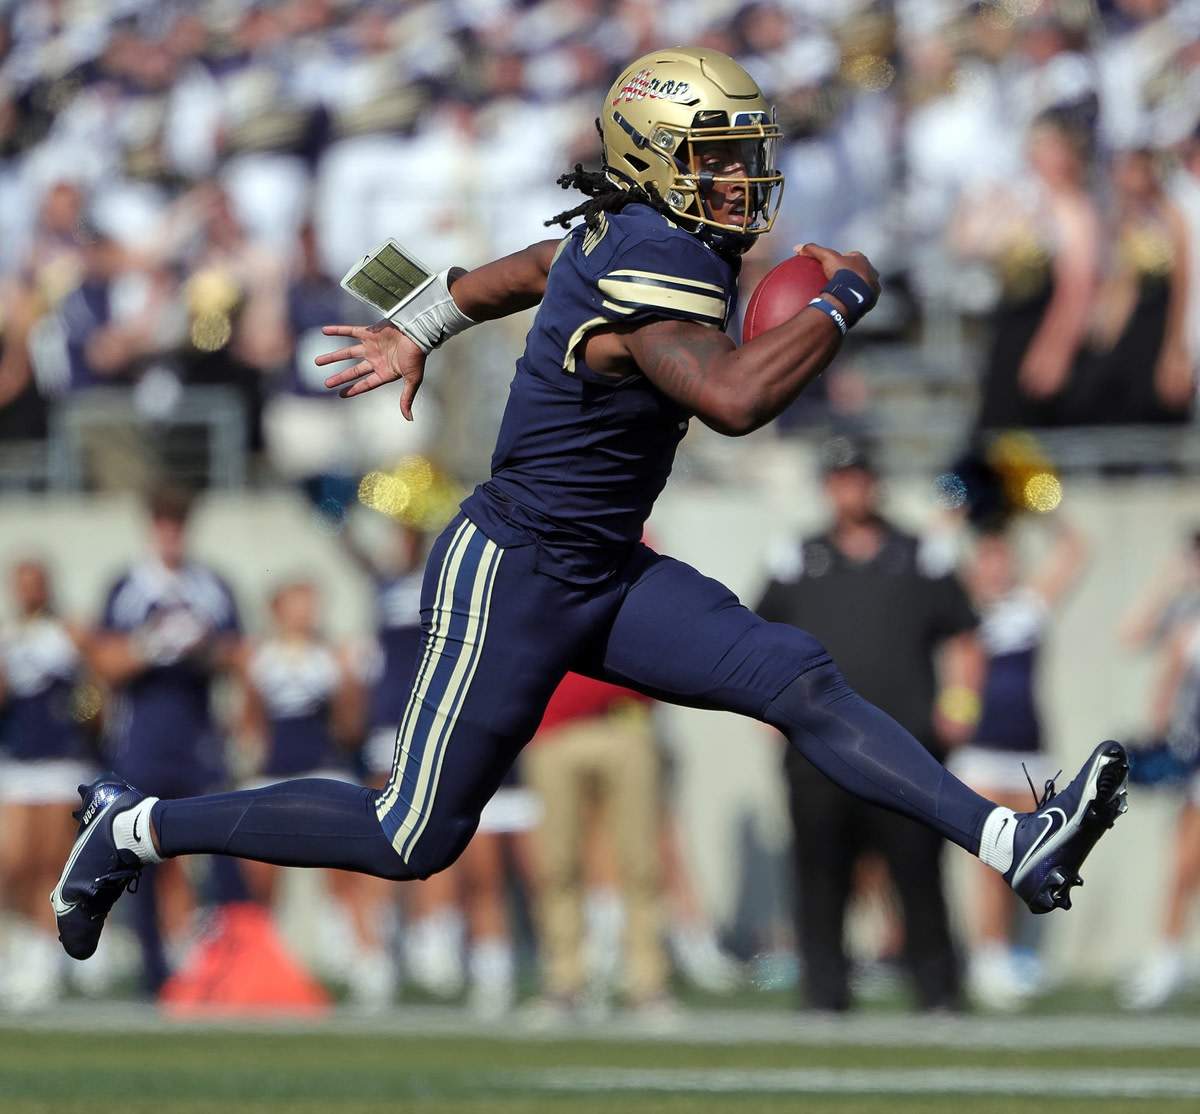 Akron Zips quarterback Kato Nelson (1) rushes for yards during the first half of an NCAA football game against the Temple Owls at InfoCision Stadium, Tuesday, Sept. 7, 2021, in Akron, Ohio.  Zipsfb 2